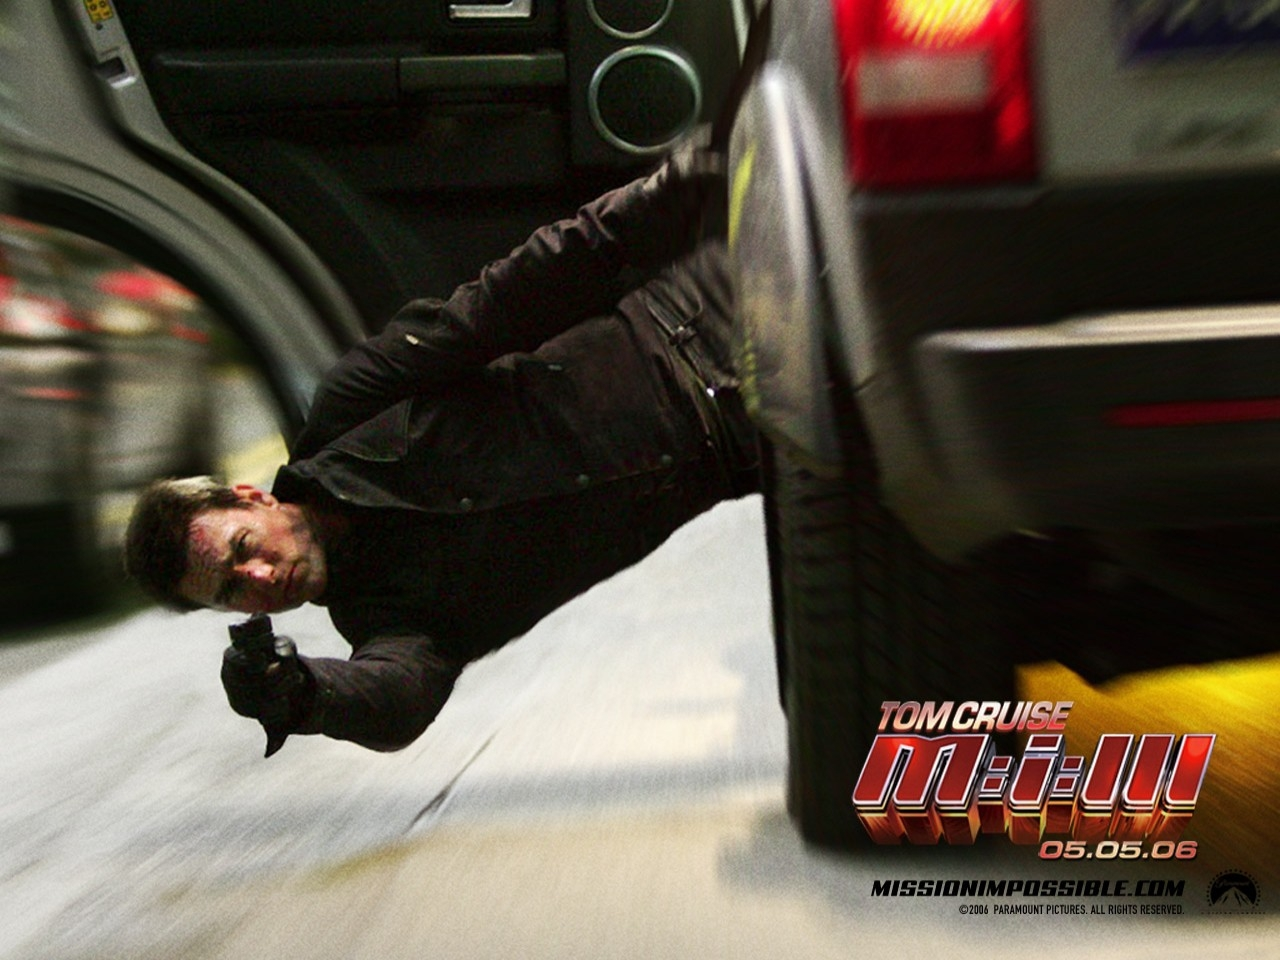 Wallpaper del film Mission: Impossible III, terzo capitolo del franchise ispirato all'omonima serie tv